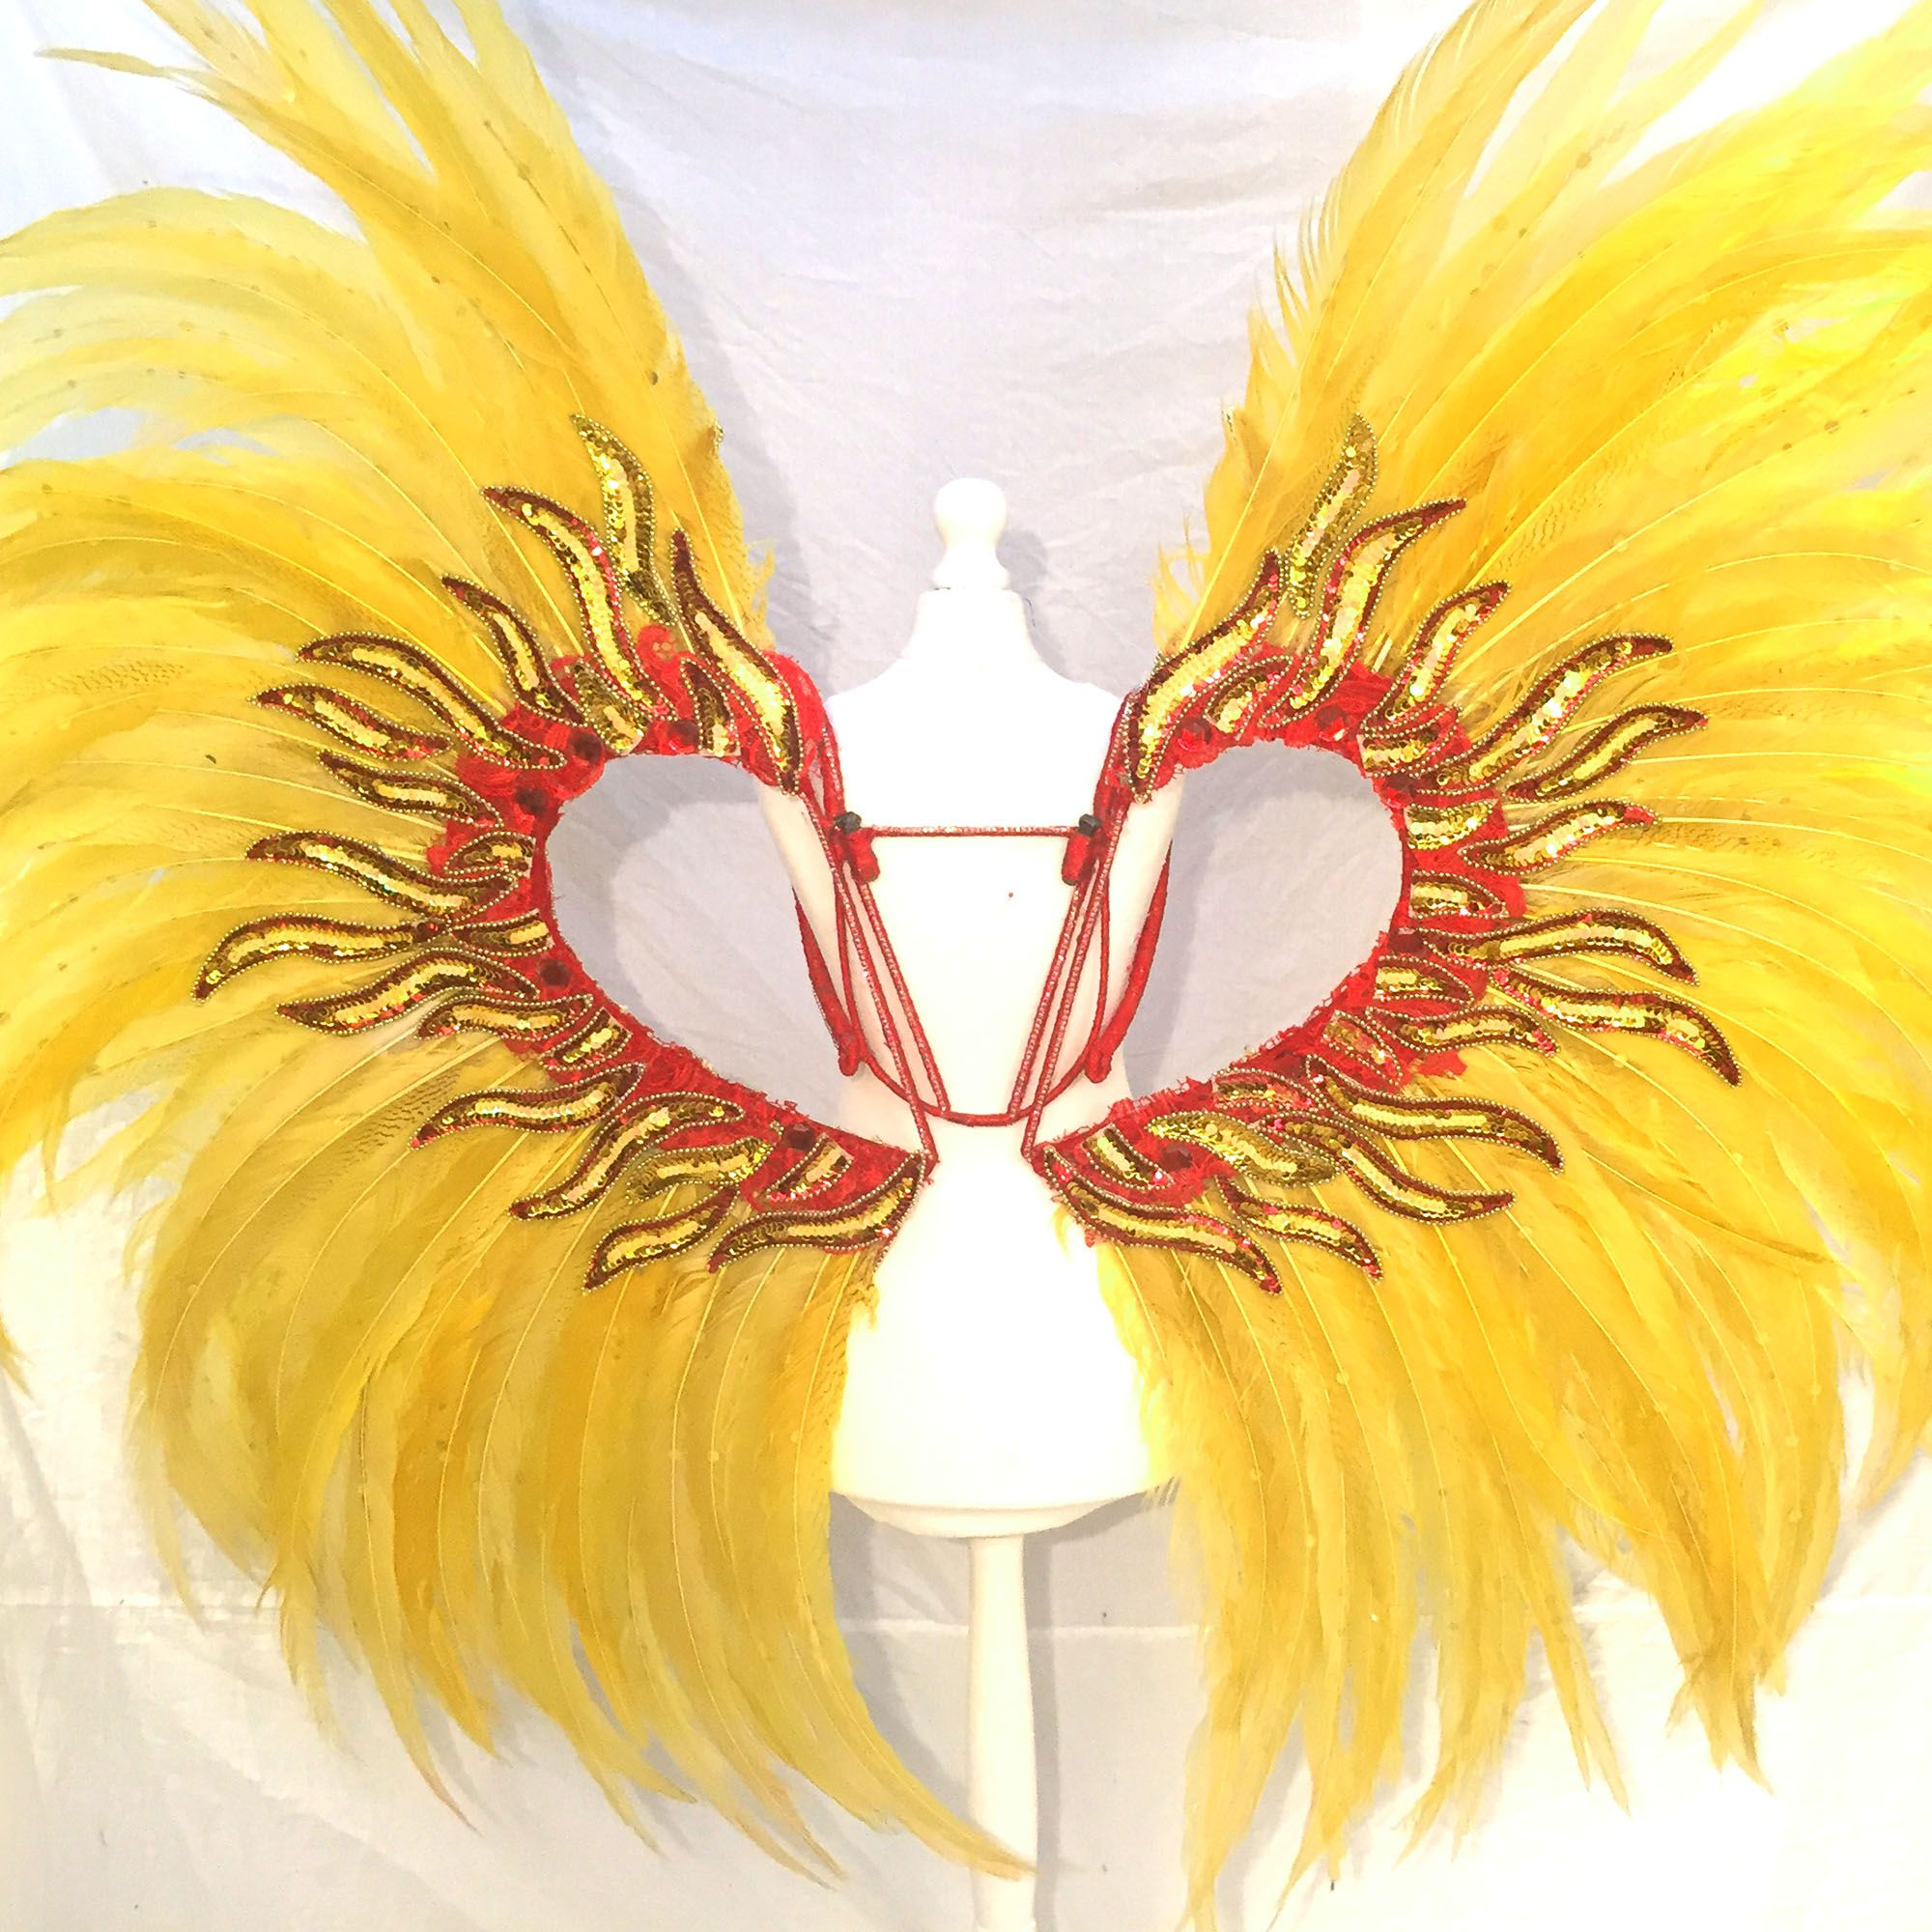 Giant Sun Goddess Angel Wings One-off Luxury Fitness competition Themewear Angel Wings made with decorated yellow silver pheasant  to make your shine like the brightest sun on stage. Decorated with facet AB beads and flames.  Detachable wings to facilitate storage and transport  FREE SHIPPING